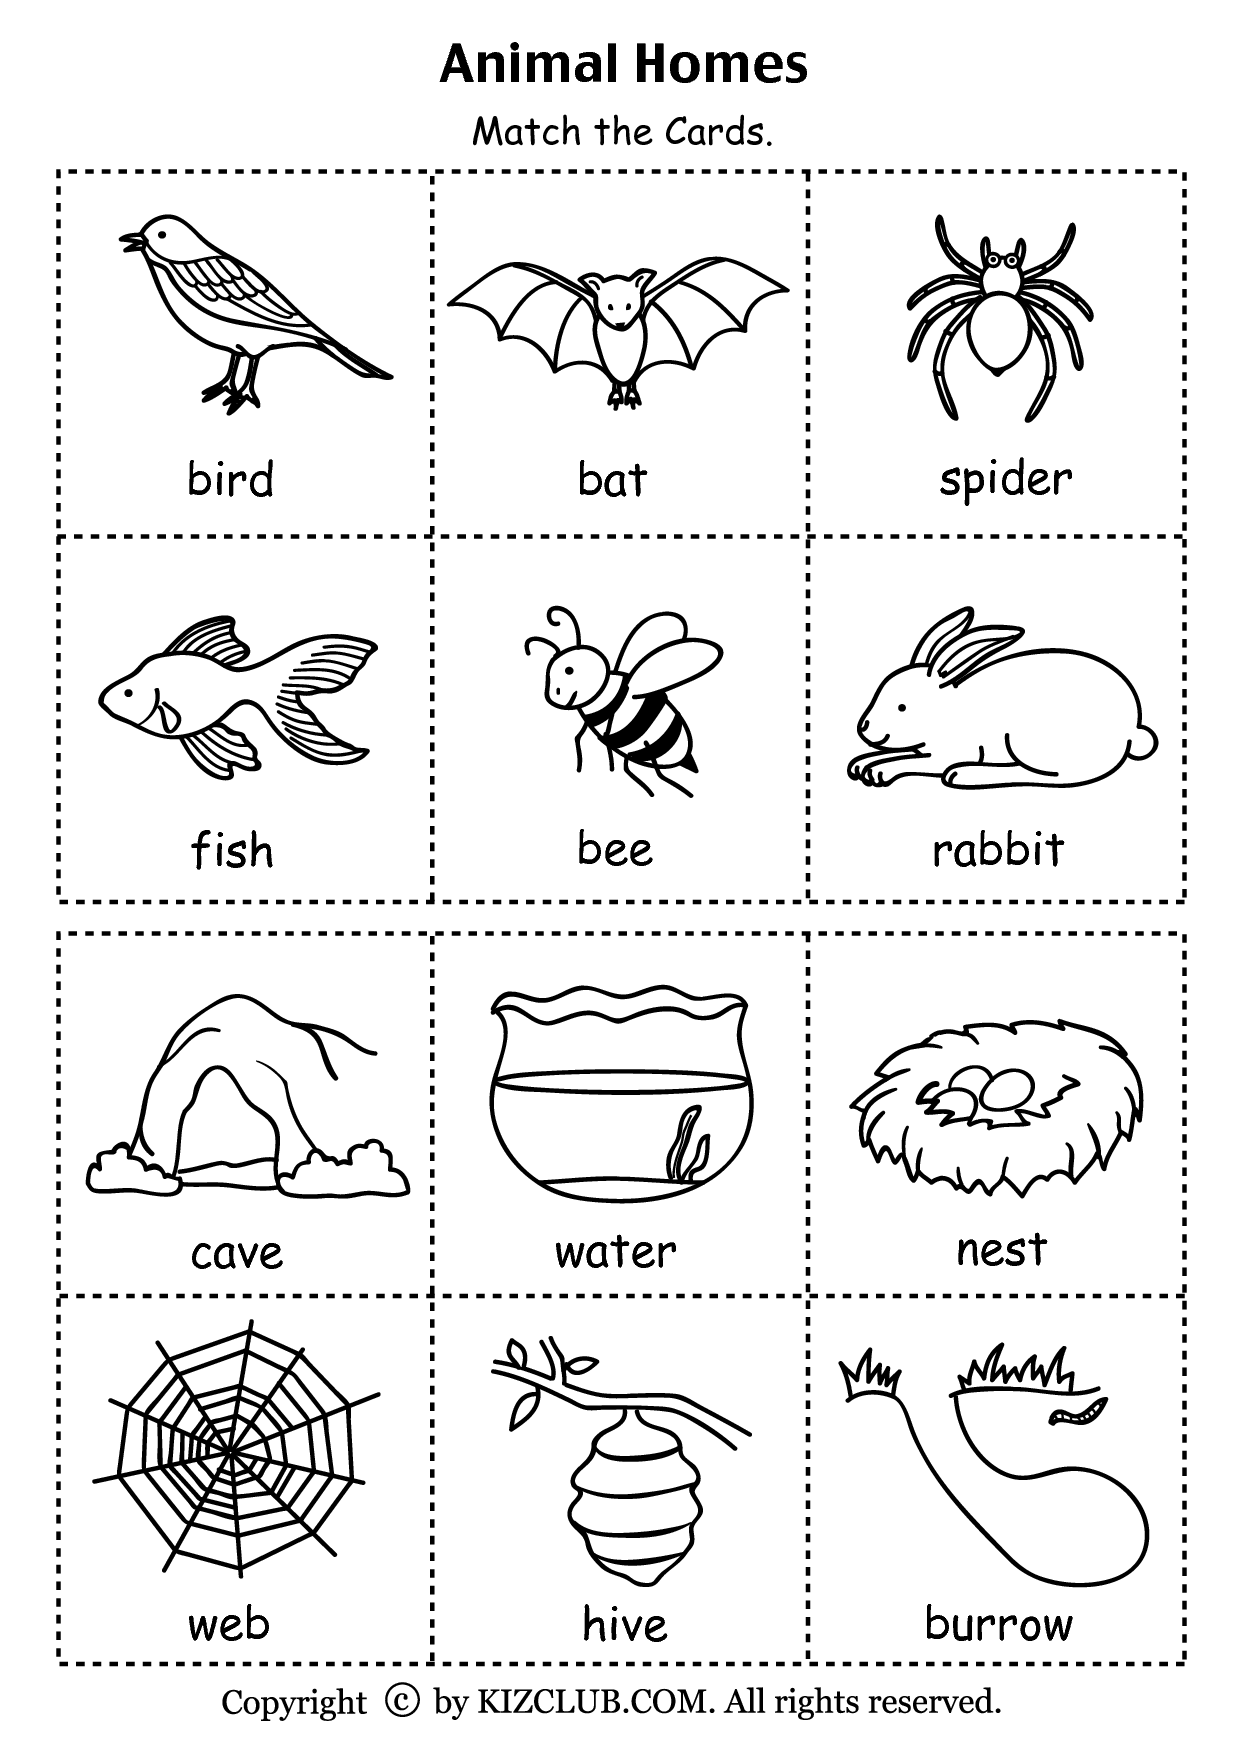 Animal homes pdf also stuff to buy pinterest habitats rh